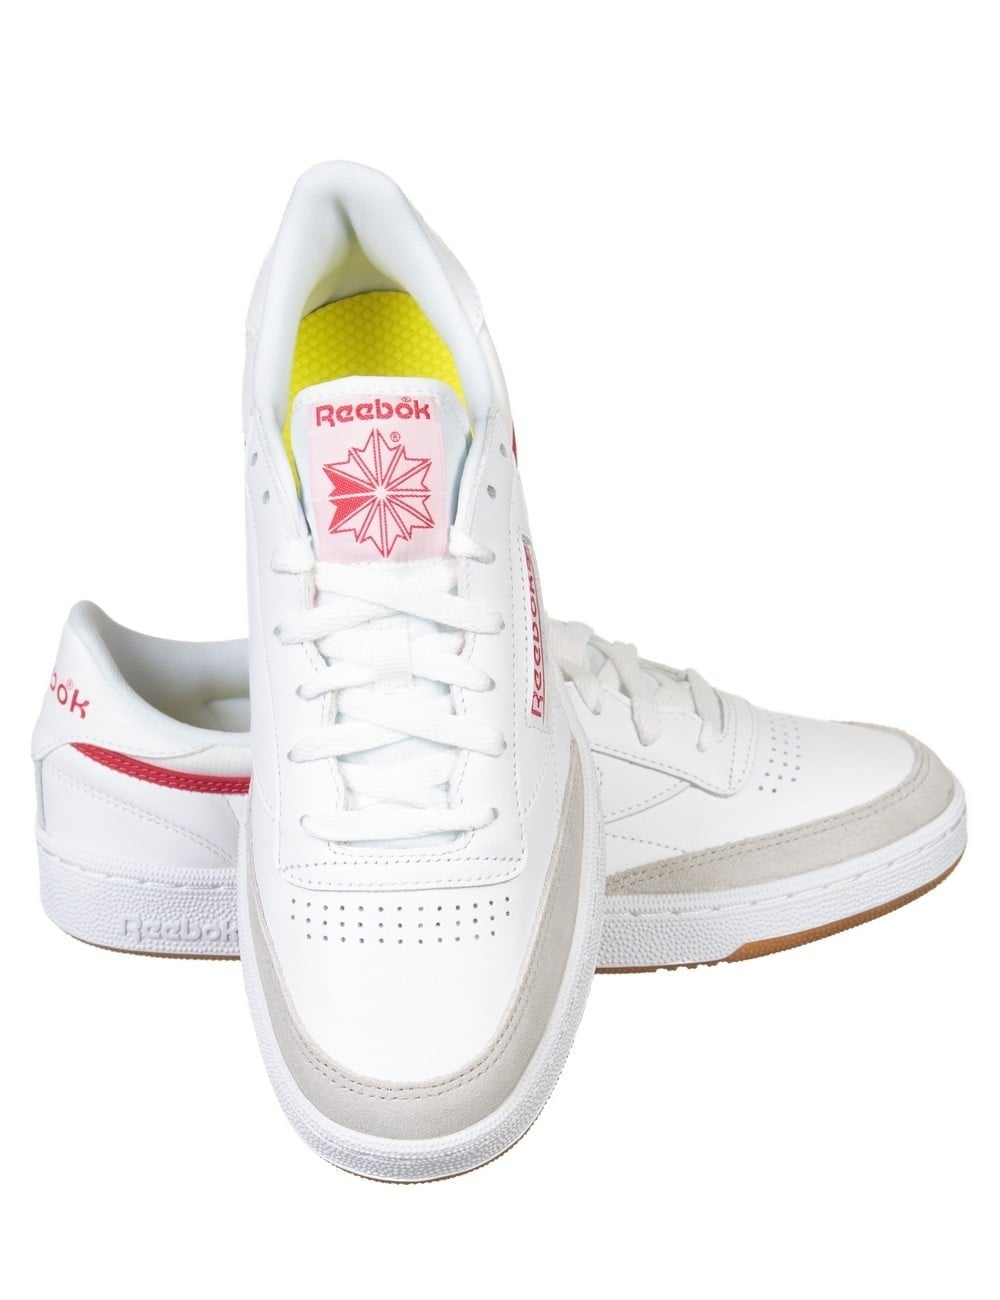 9b31acd37754 Reebok Club C 85 CP Shoes - White Grey Red - Footwear from Fat ...